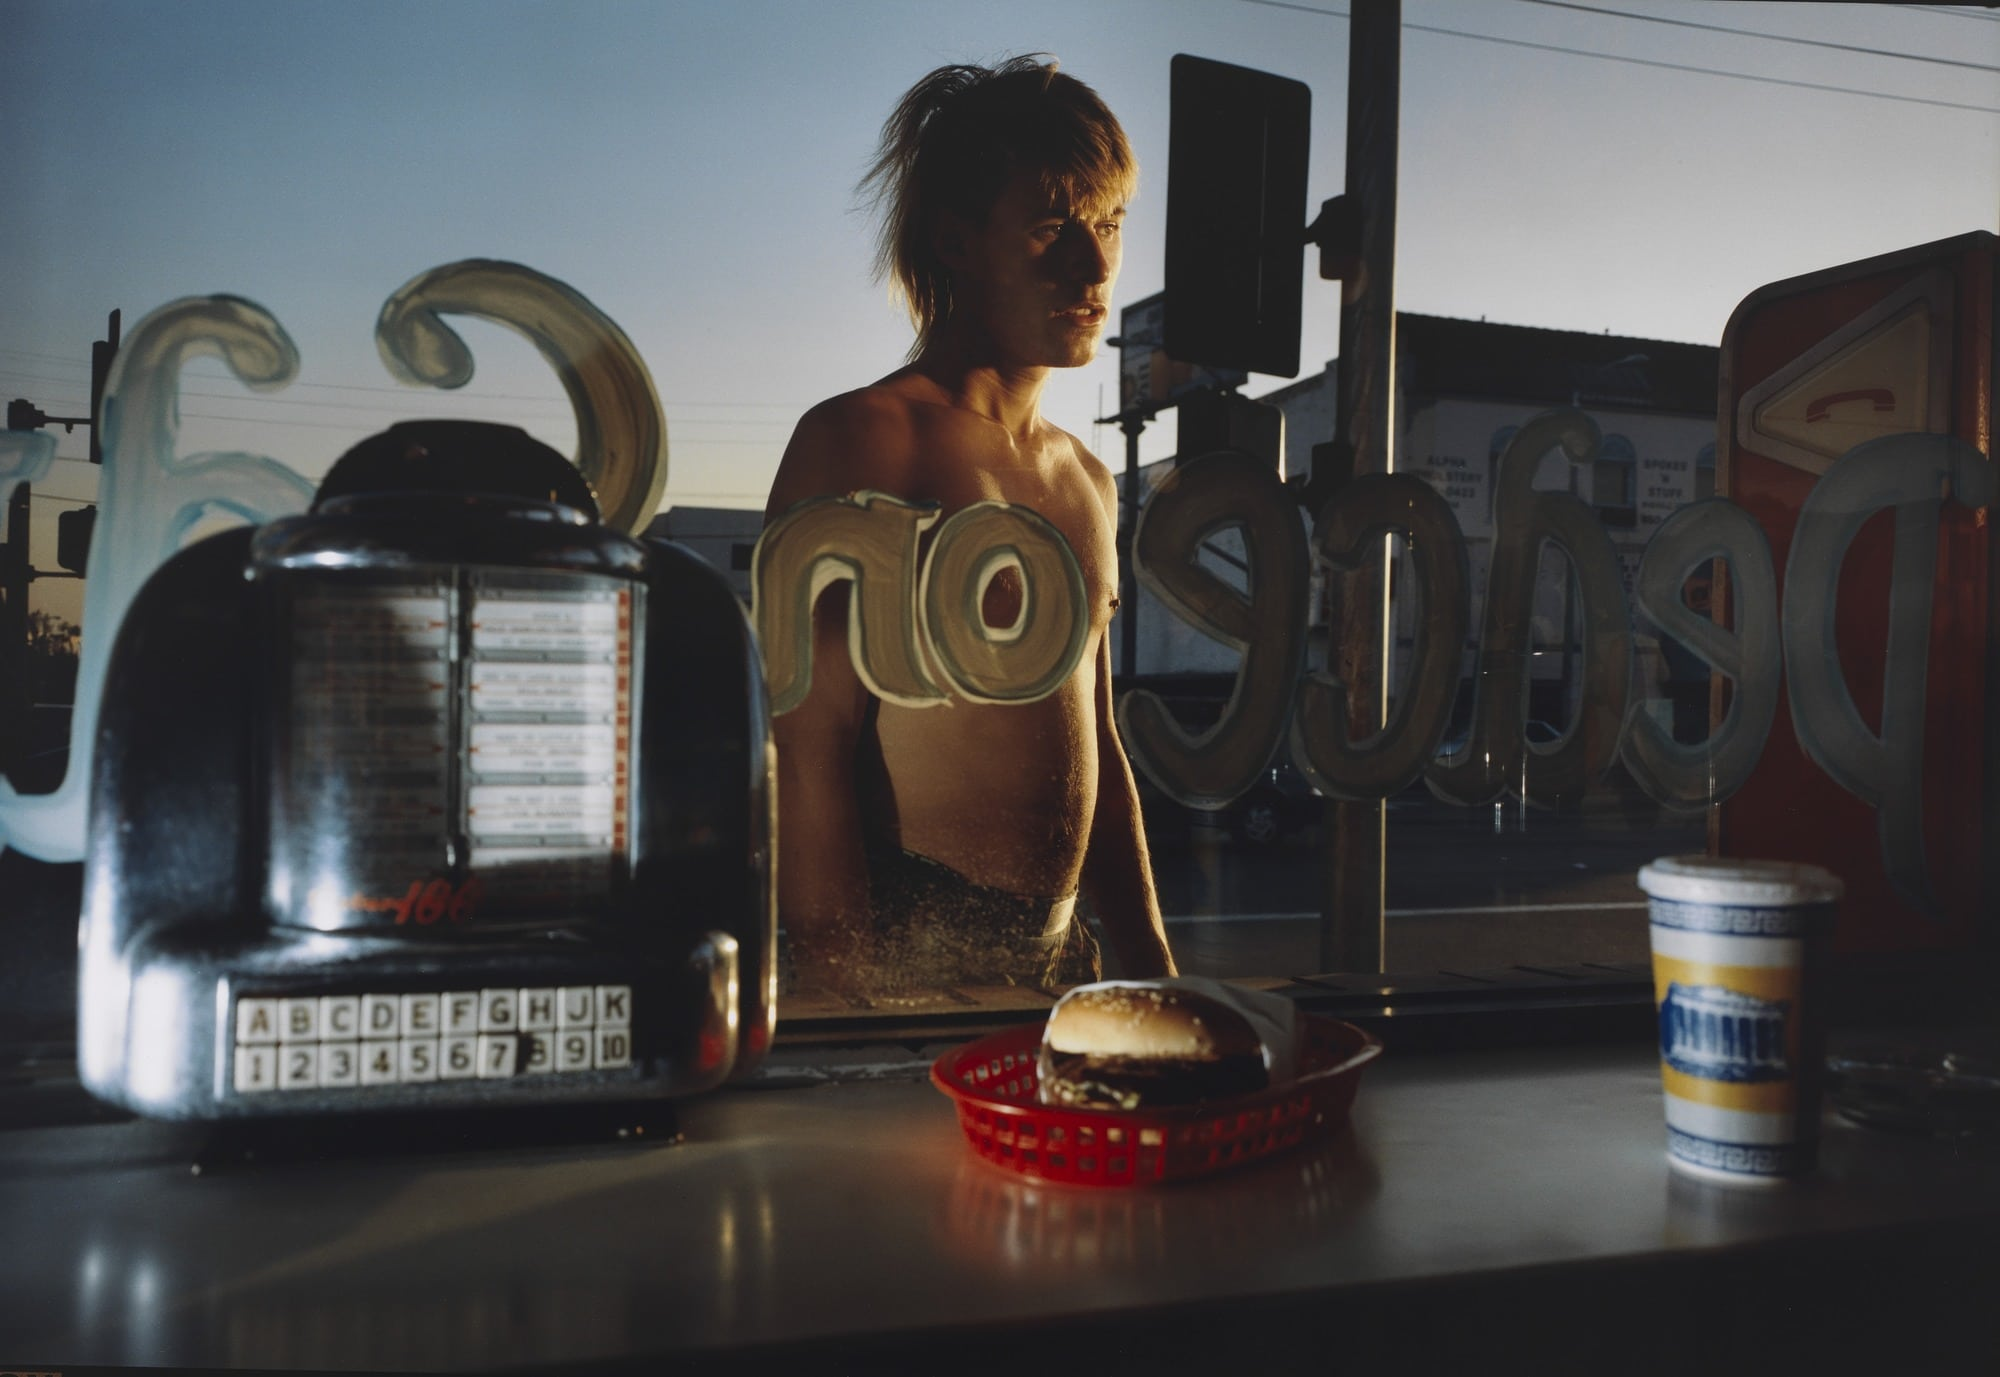 Philip-Lorca diCorcia Eddie Anderson; 21 years old; Houston, Texas; $20. Tableau Photography